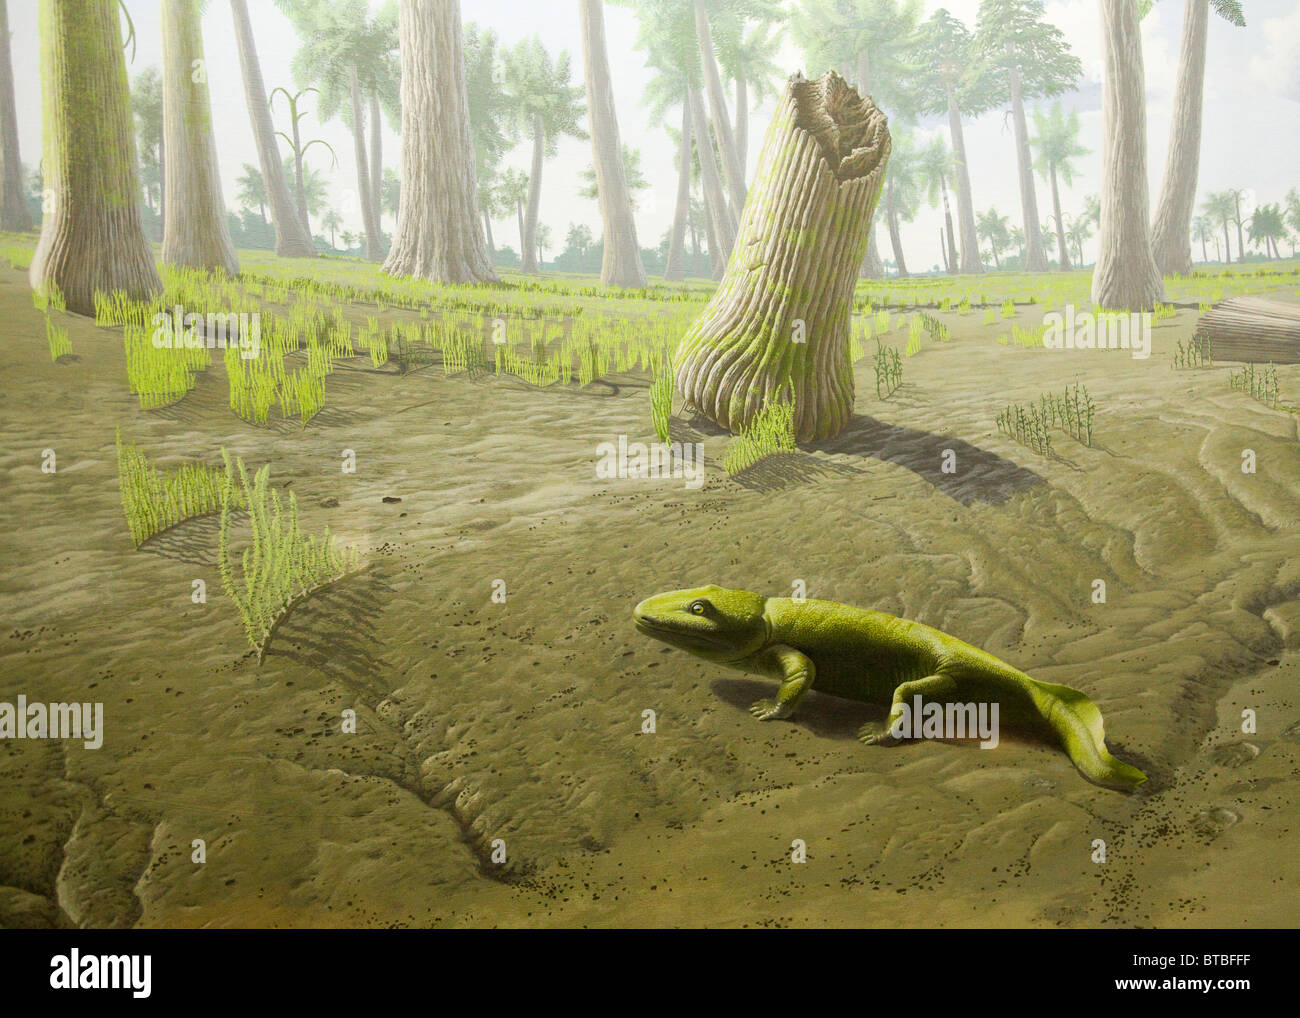 Artist rendering of the Lungfish(dipnoan) - Devonian period - Stock Image